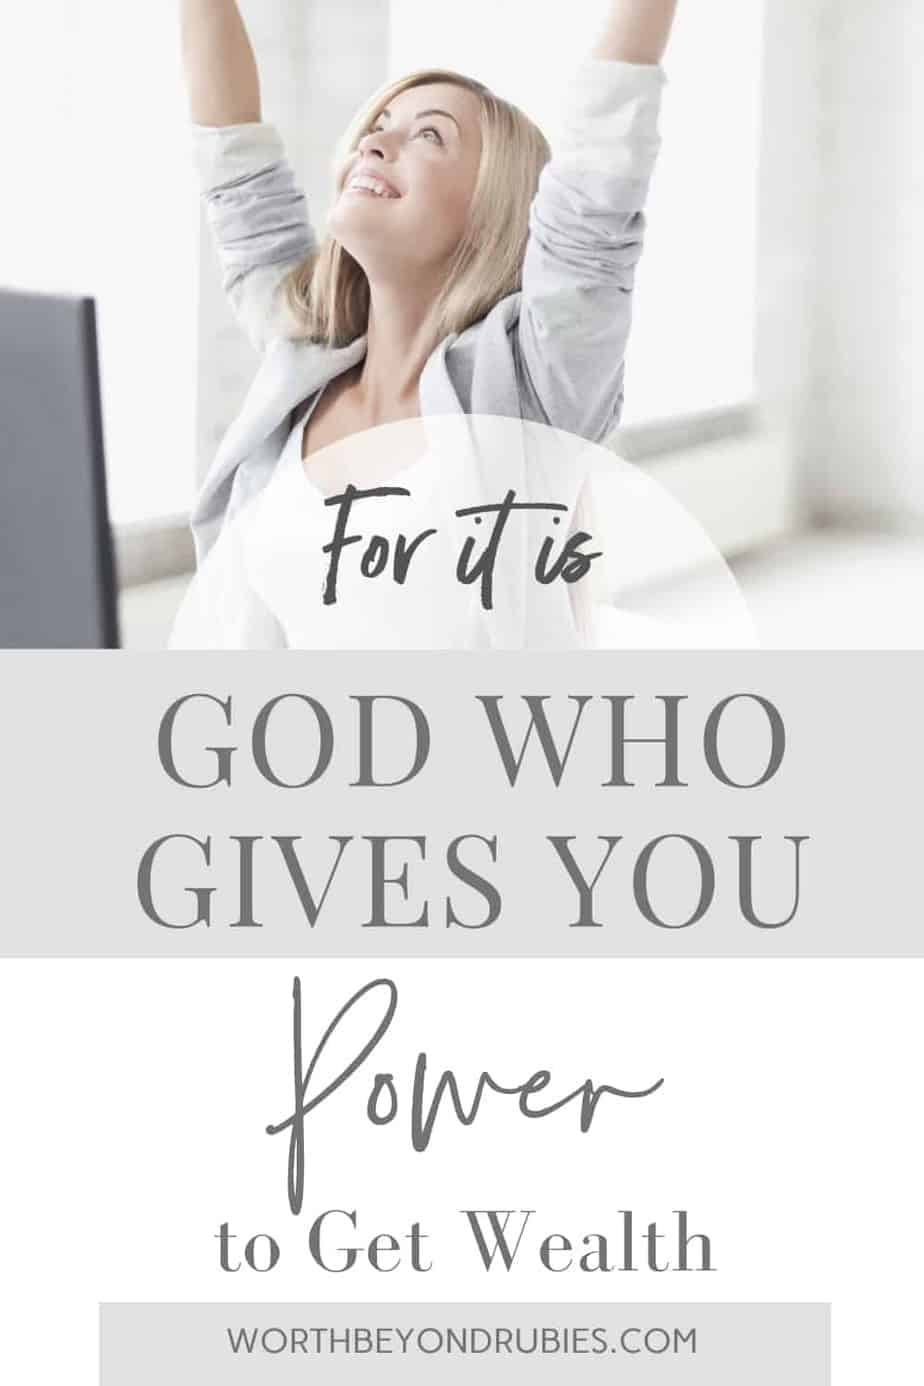 An image of a blonde woman in a gray suit and a white top sitting at a desk with her hands up in the air looking upward and text that says For it is God Who Gives You Power to Get Wealth